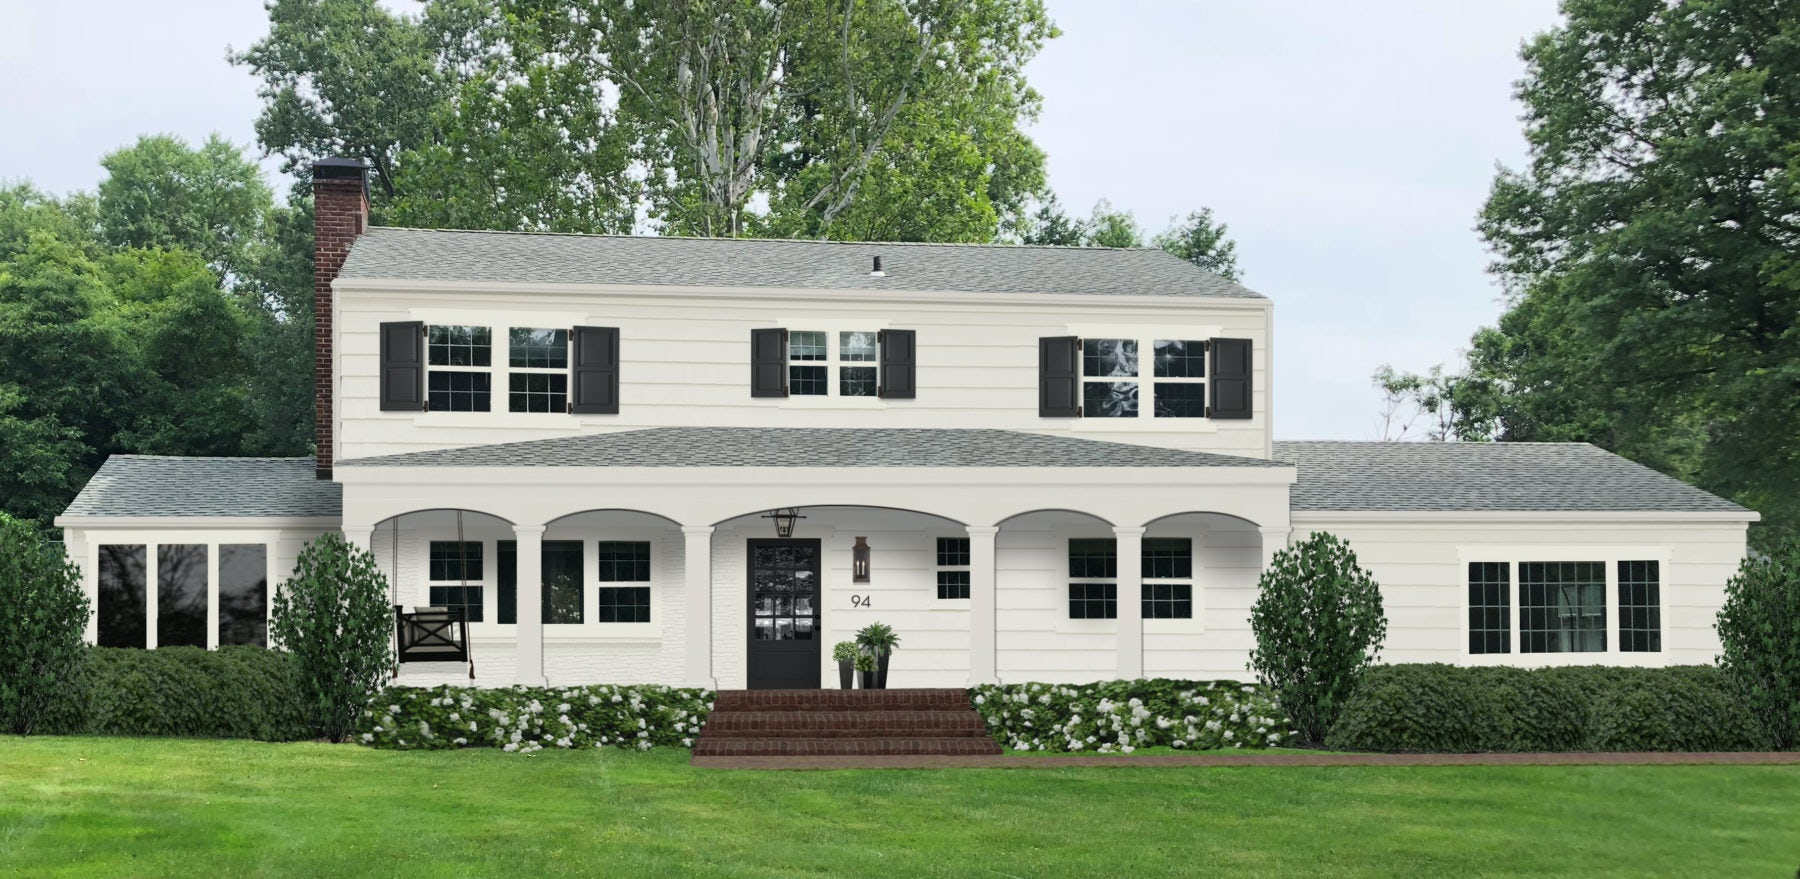 Rendering of a colonial home with porch